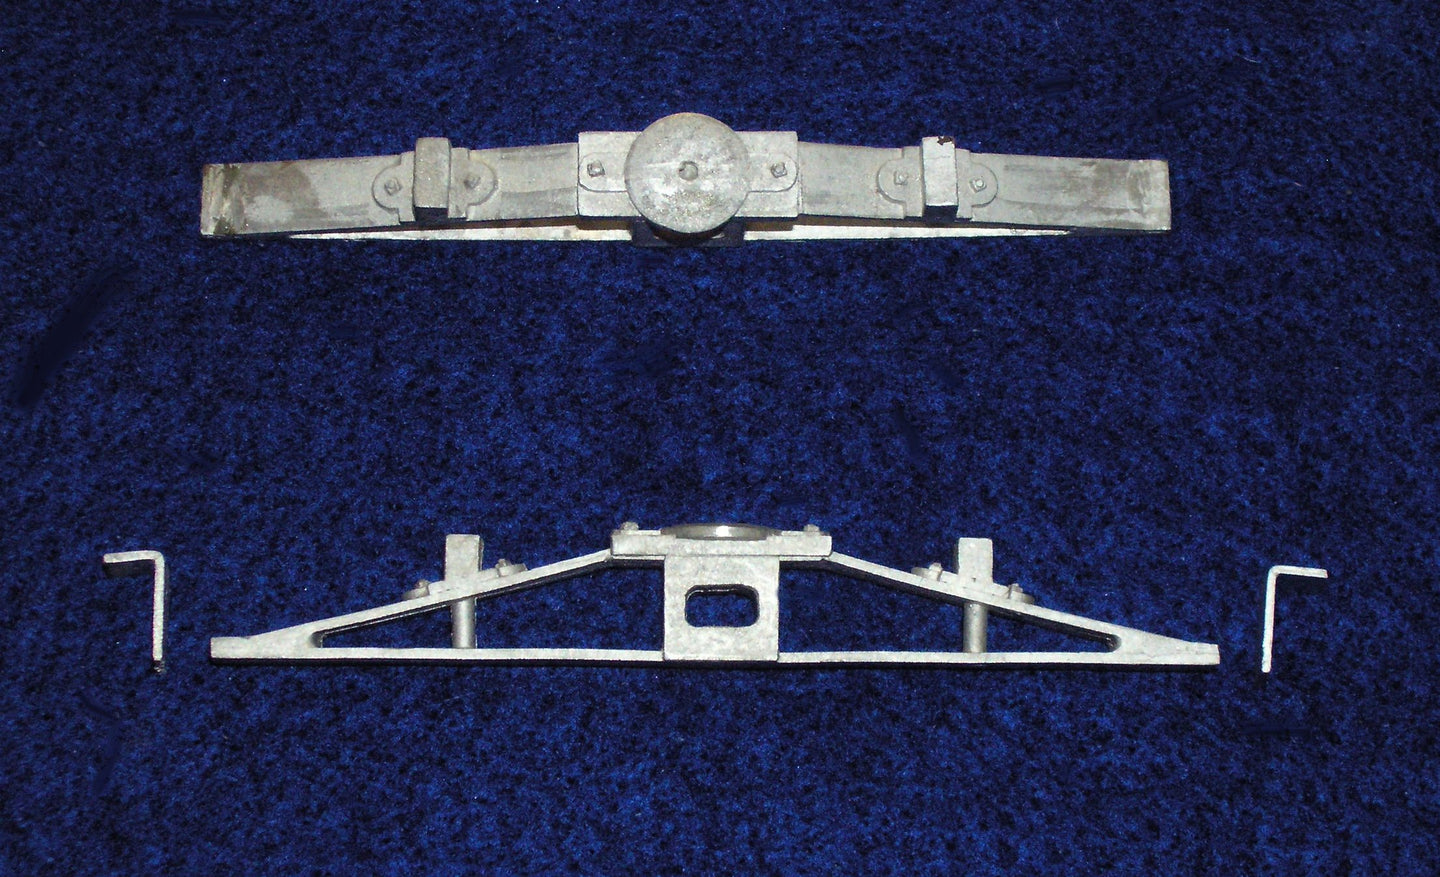 DRGW bolster set for flat cars and cabooses.